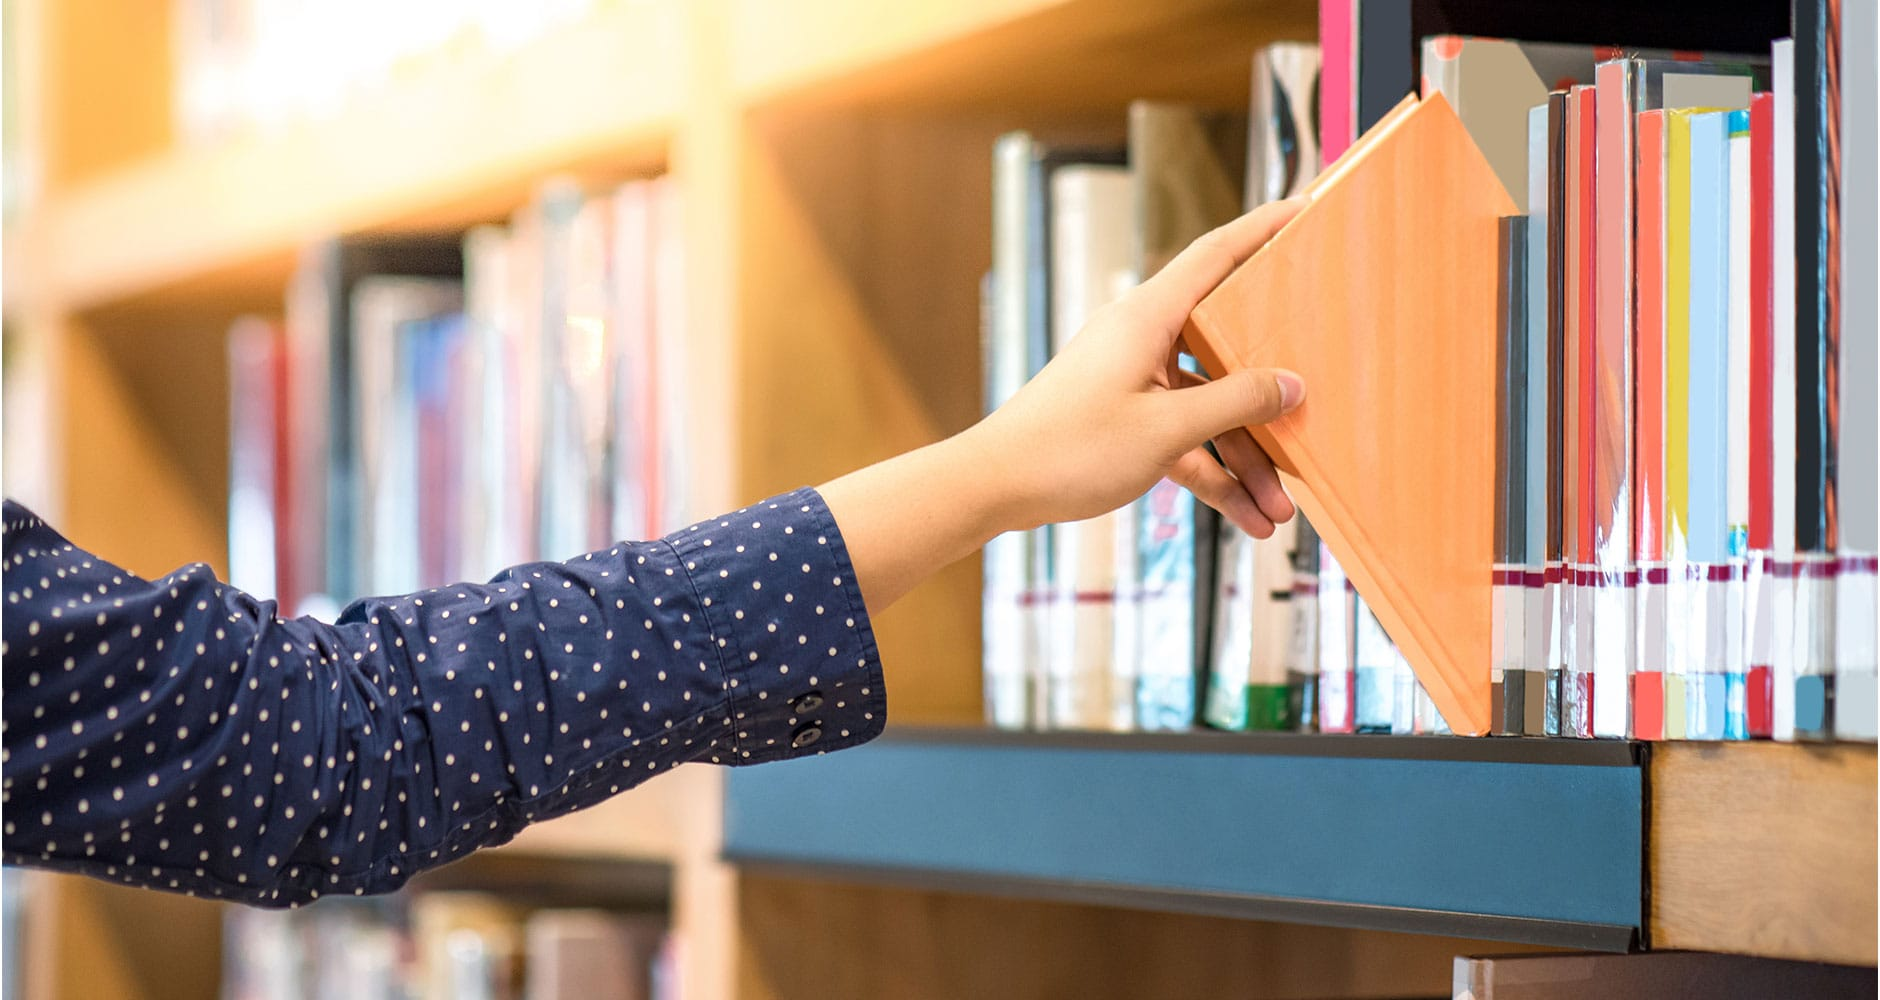 Woman browsing through library books on a shelf